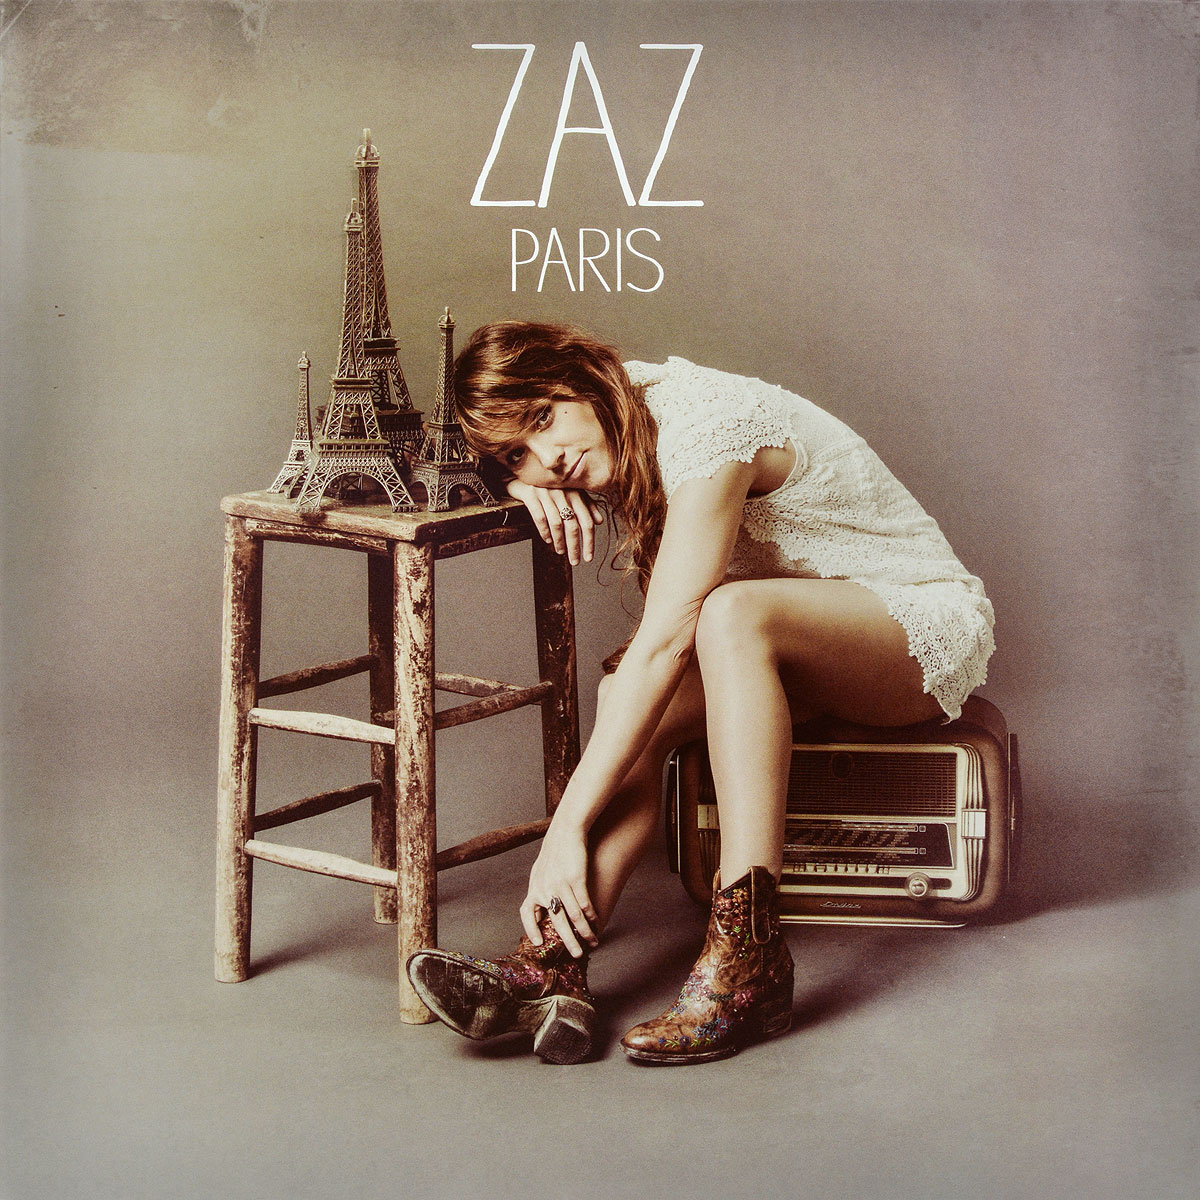 Zaz Zaz. Paris (2 LP) цена и фото